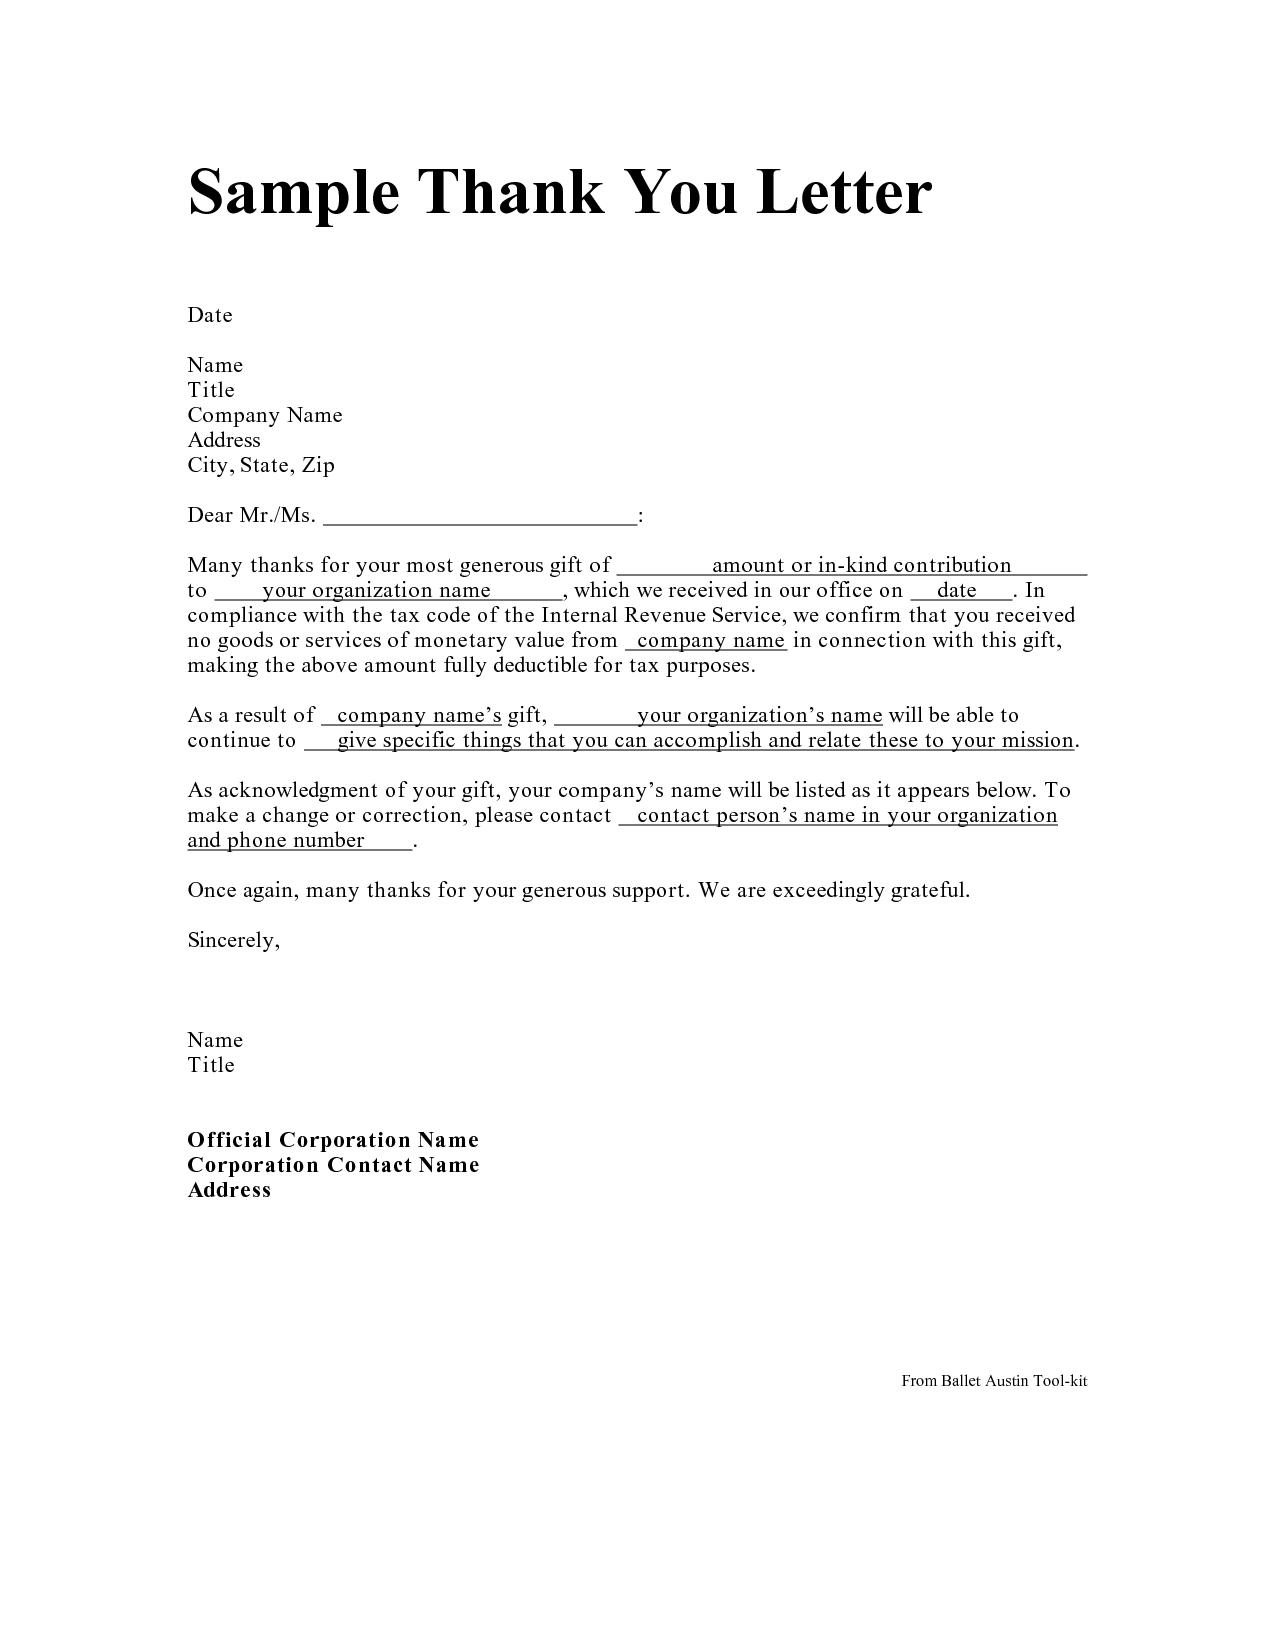 Long Term Missionary Support Letter Template - Personal Thank You Letter Personal Thank You Letter Samples